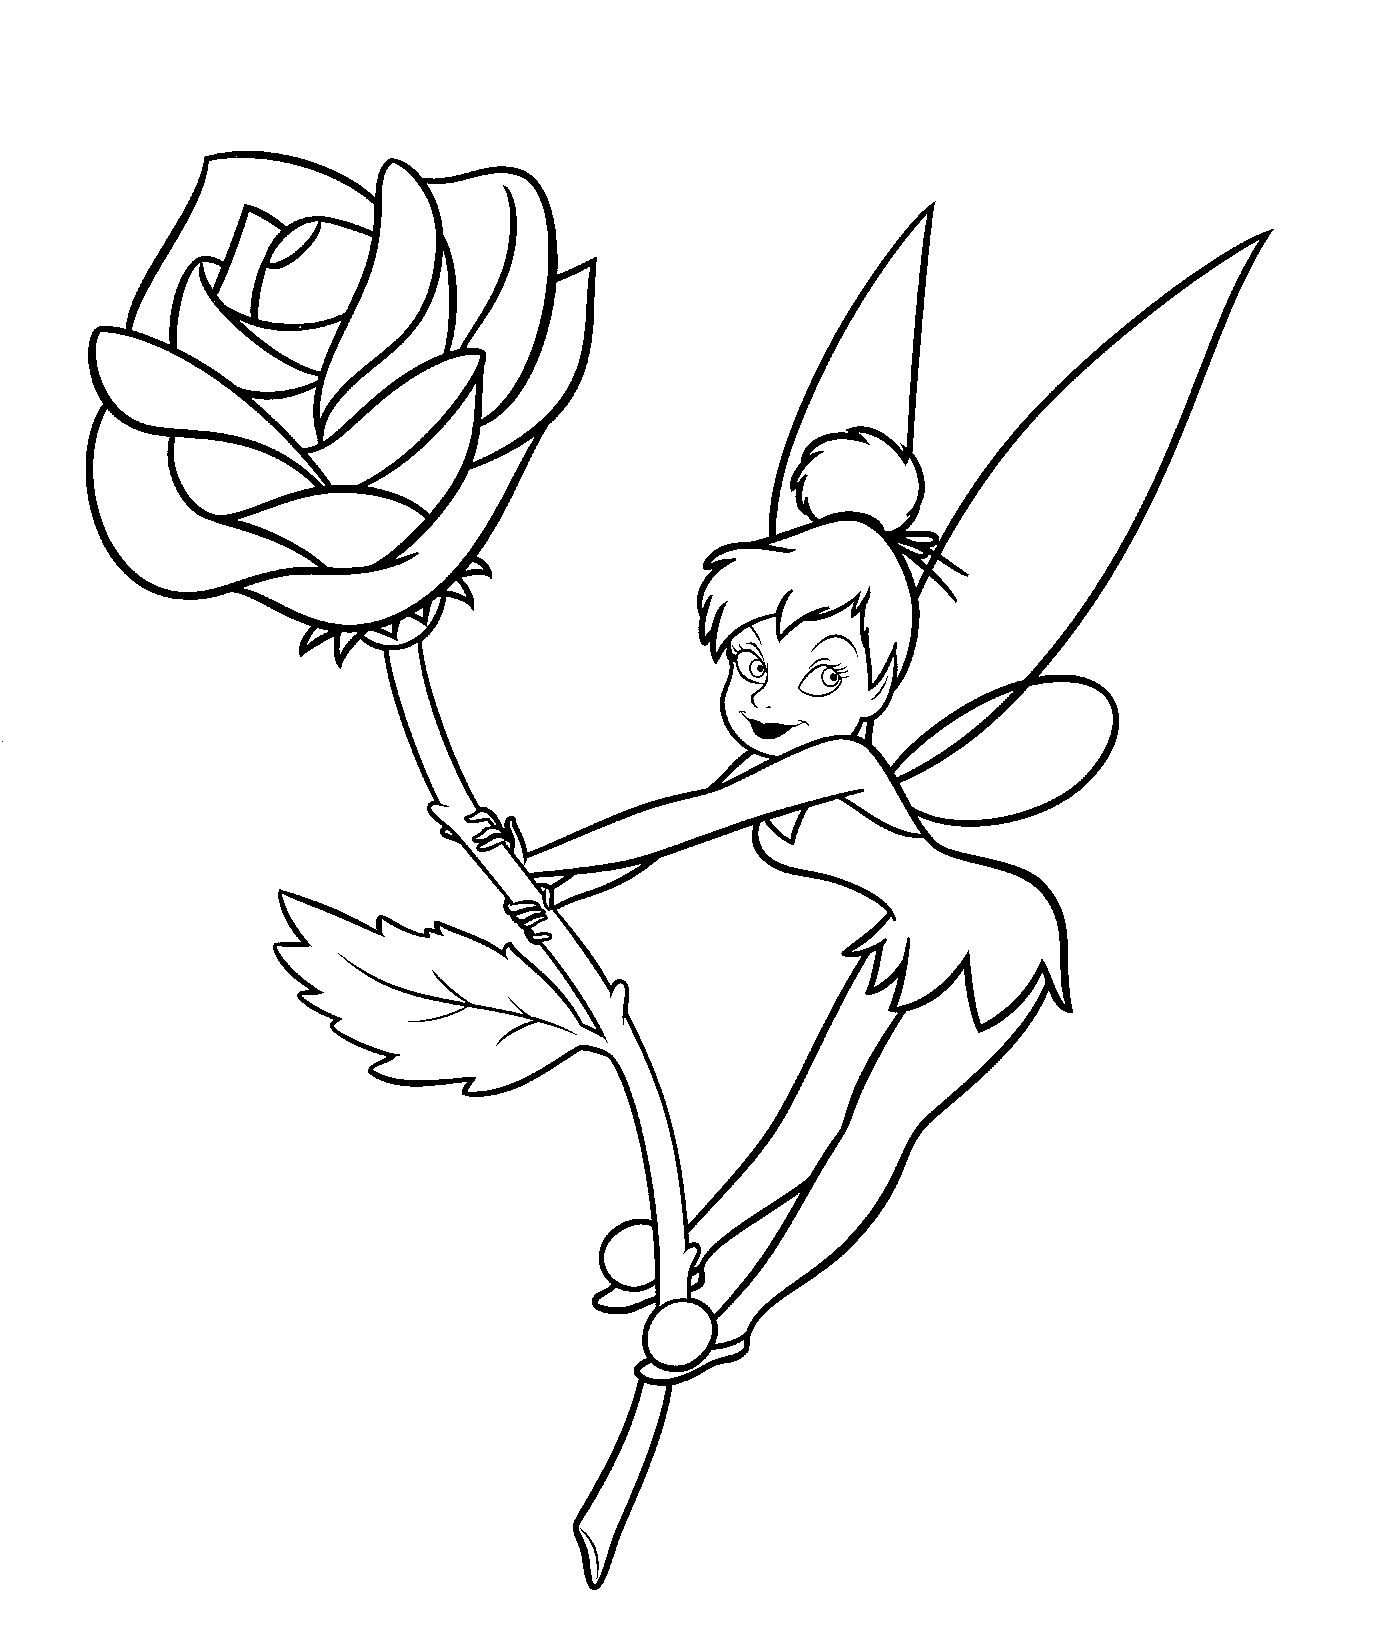 tinkerbell coloring sheets tinkerbell coloring pages tinkerbell coloring sheets